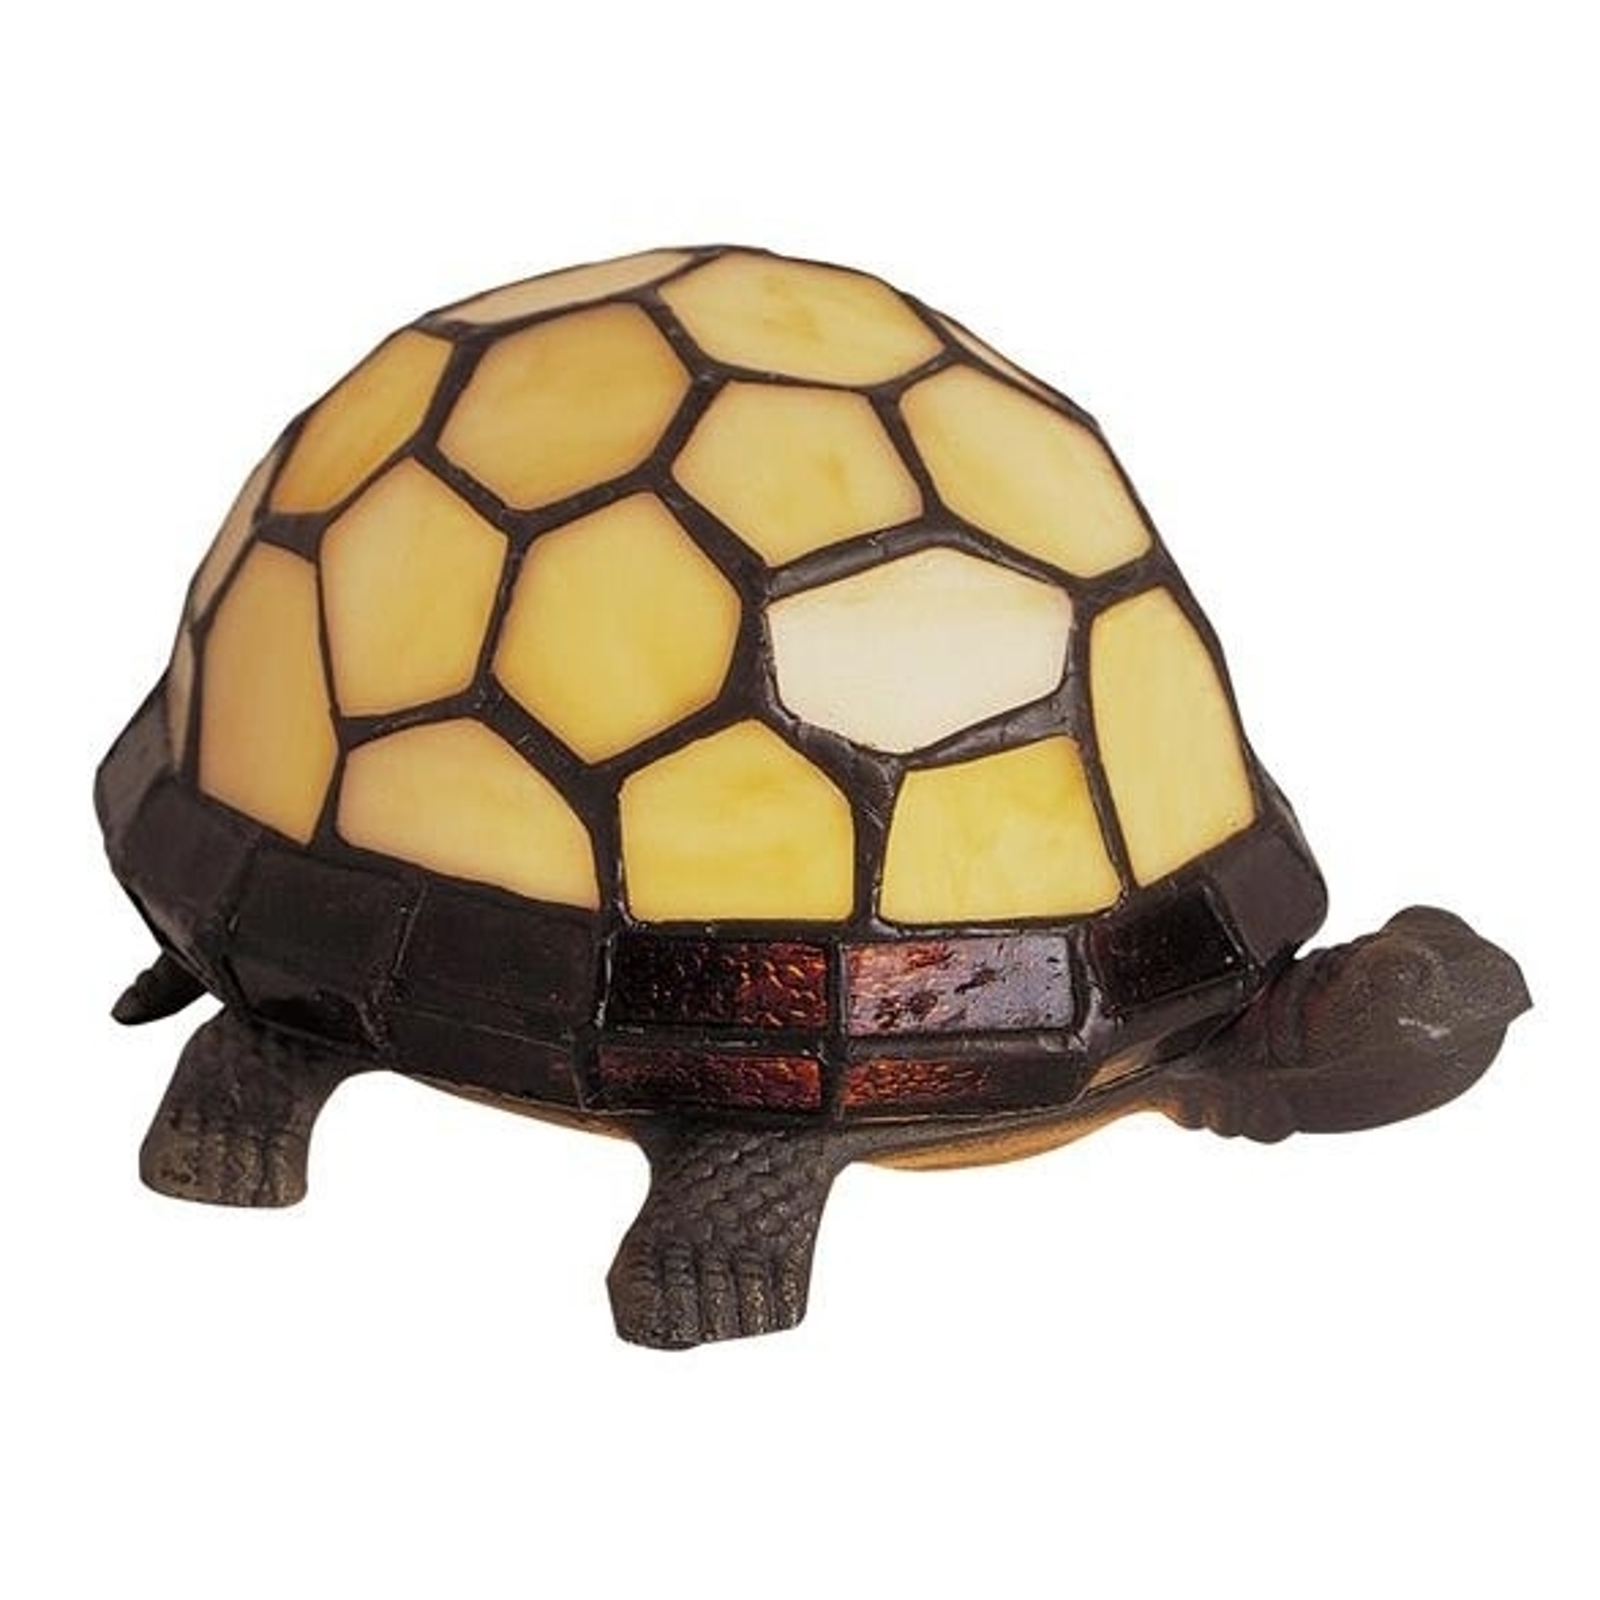 TORTUE table lamp shaped like a turtle_1032233_1